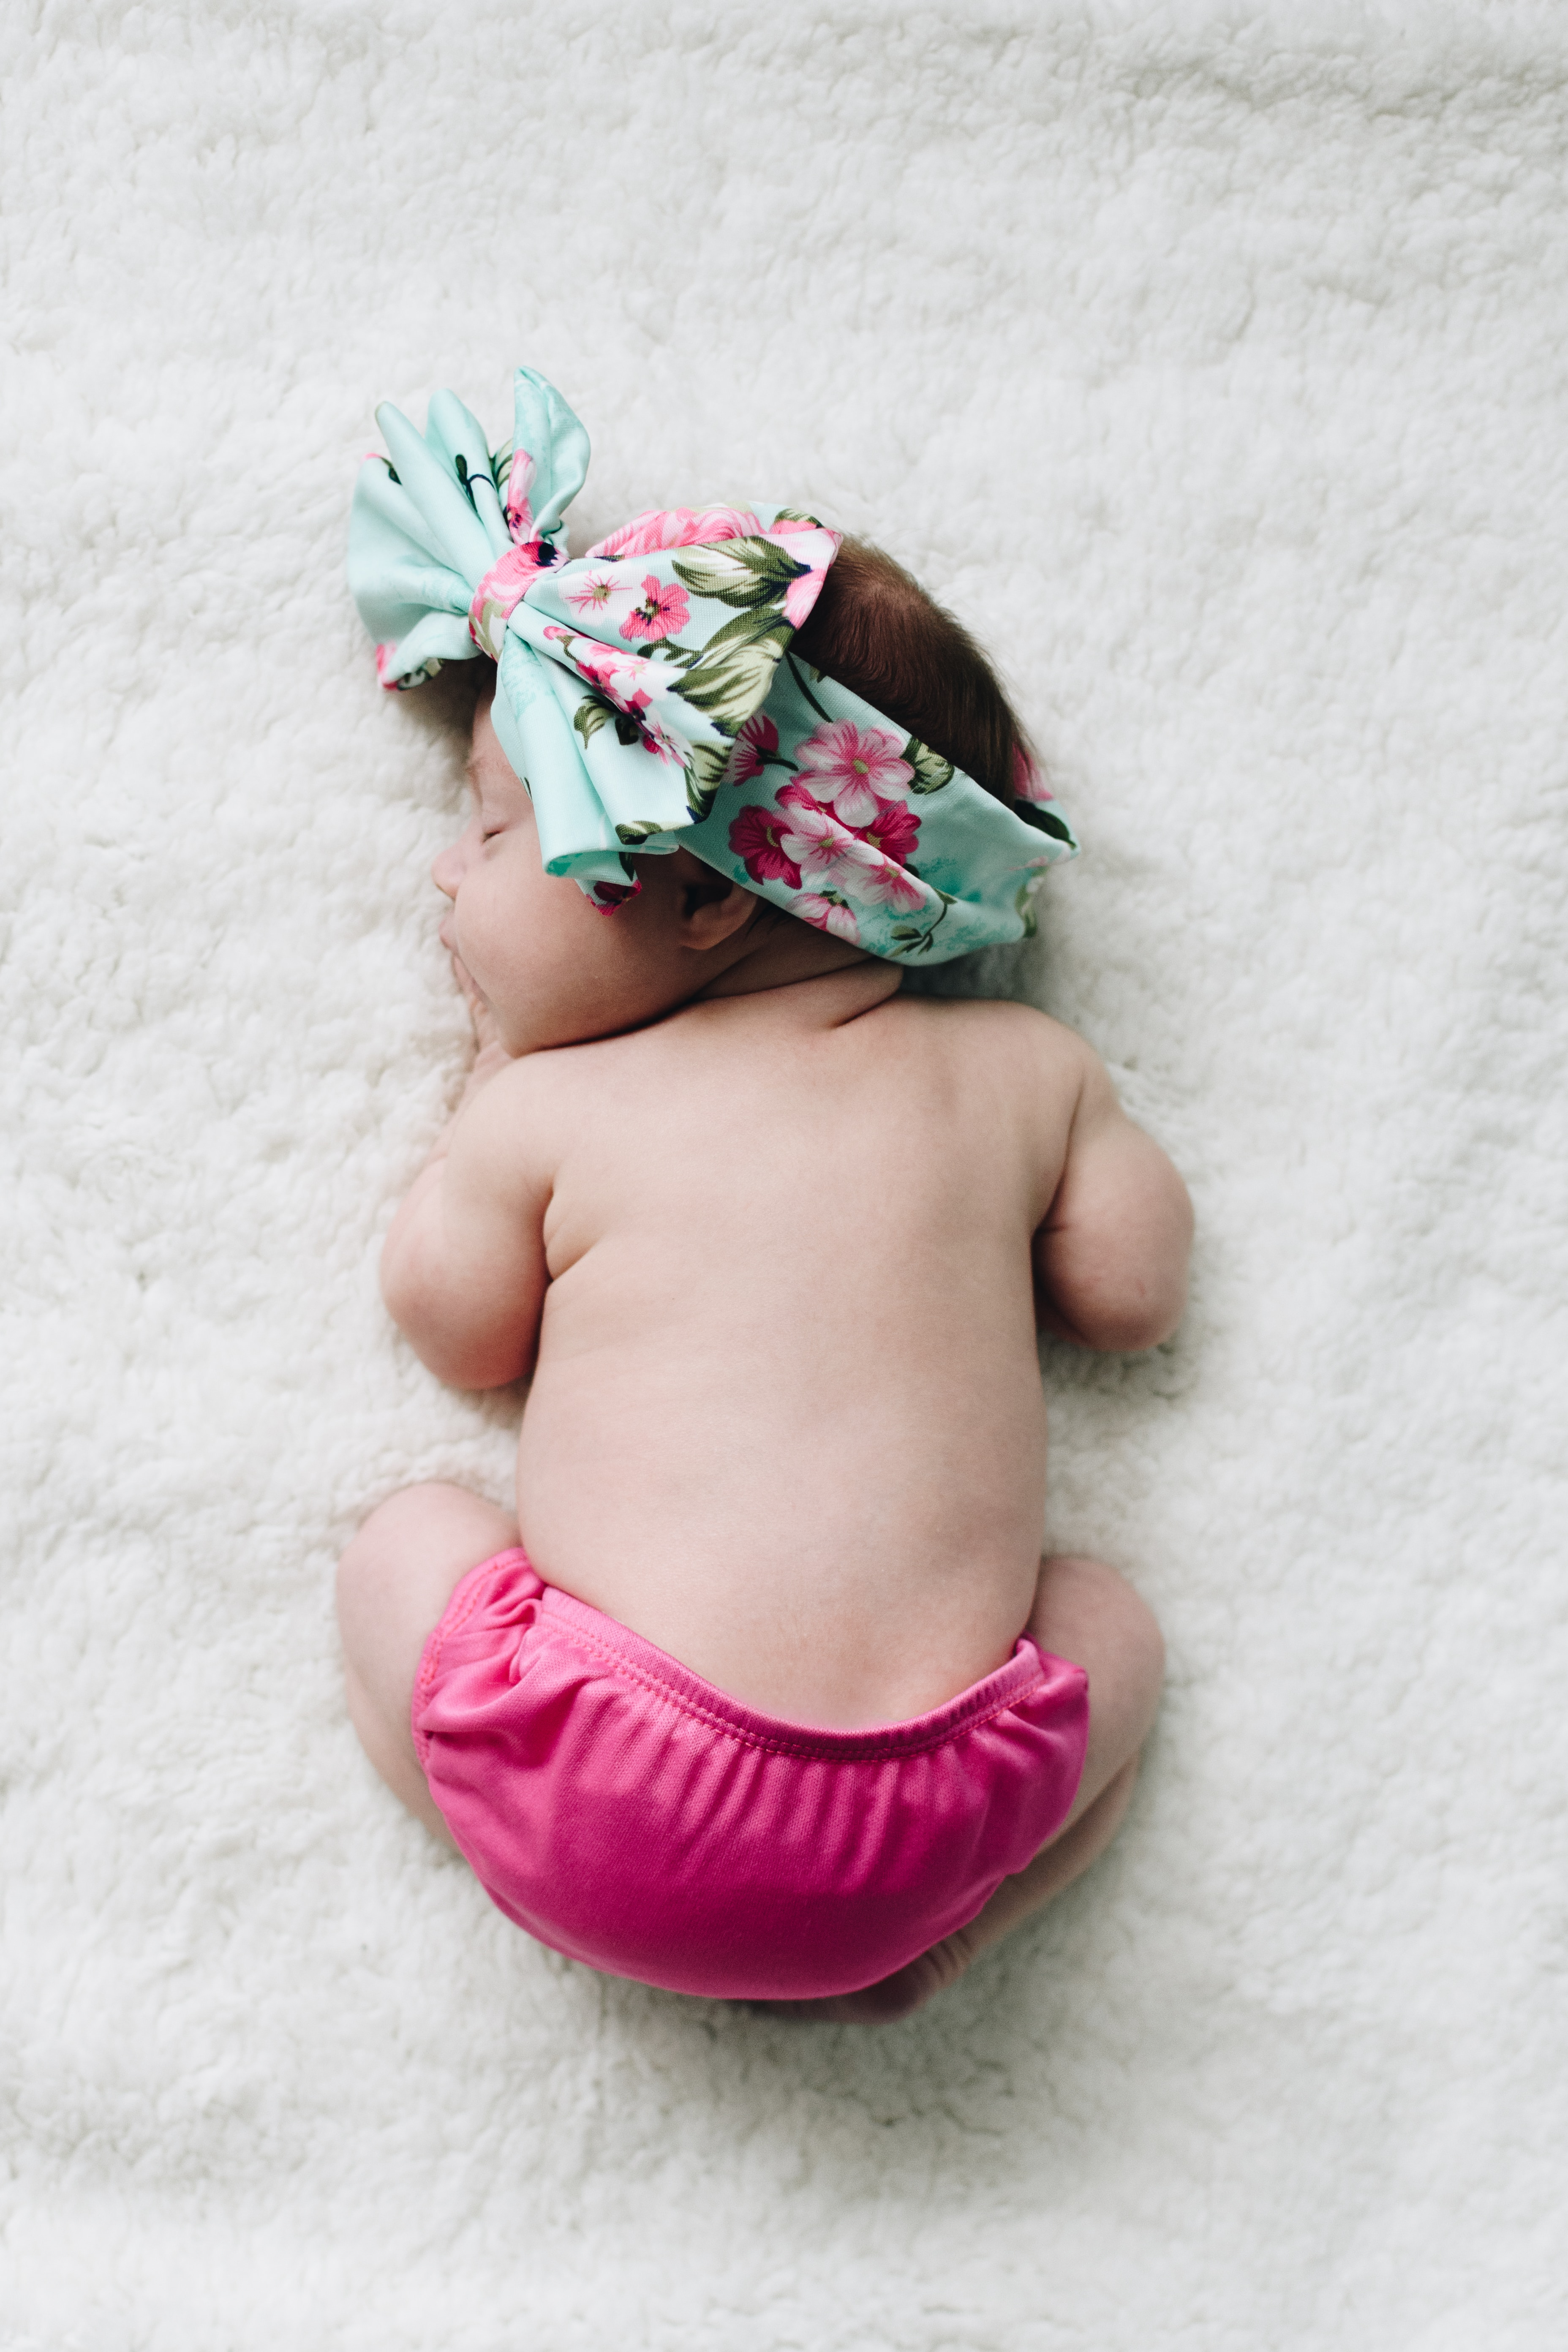 10 Handy Tips to Put Your Baby to Sleep With Ease